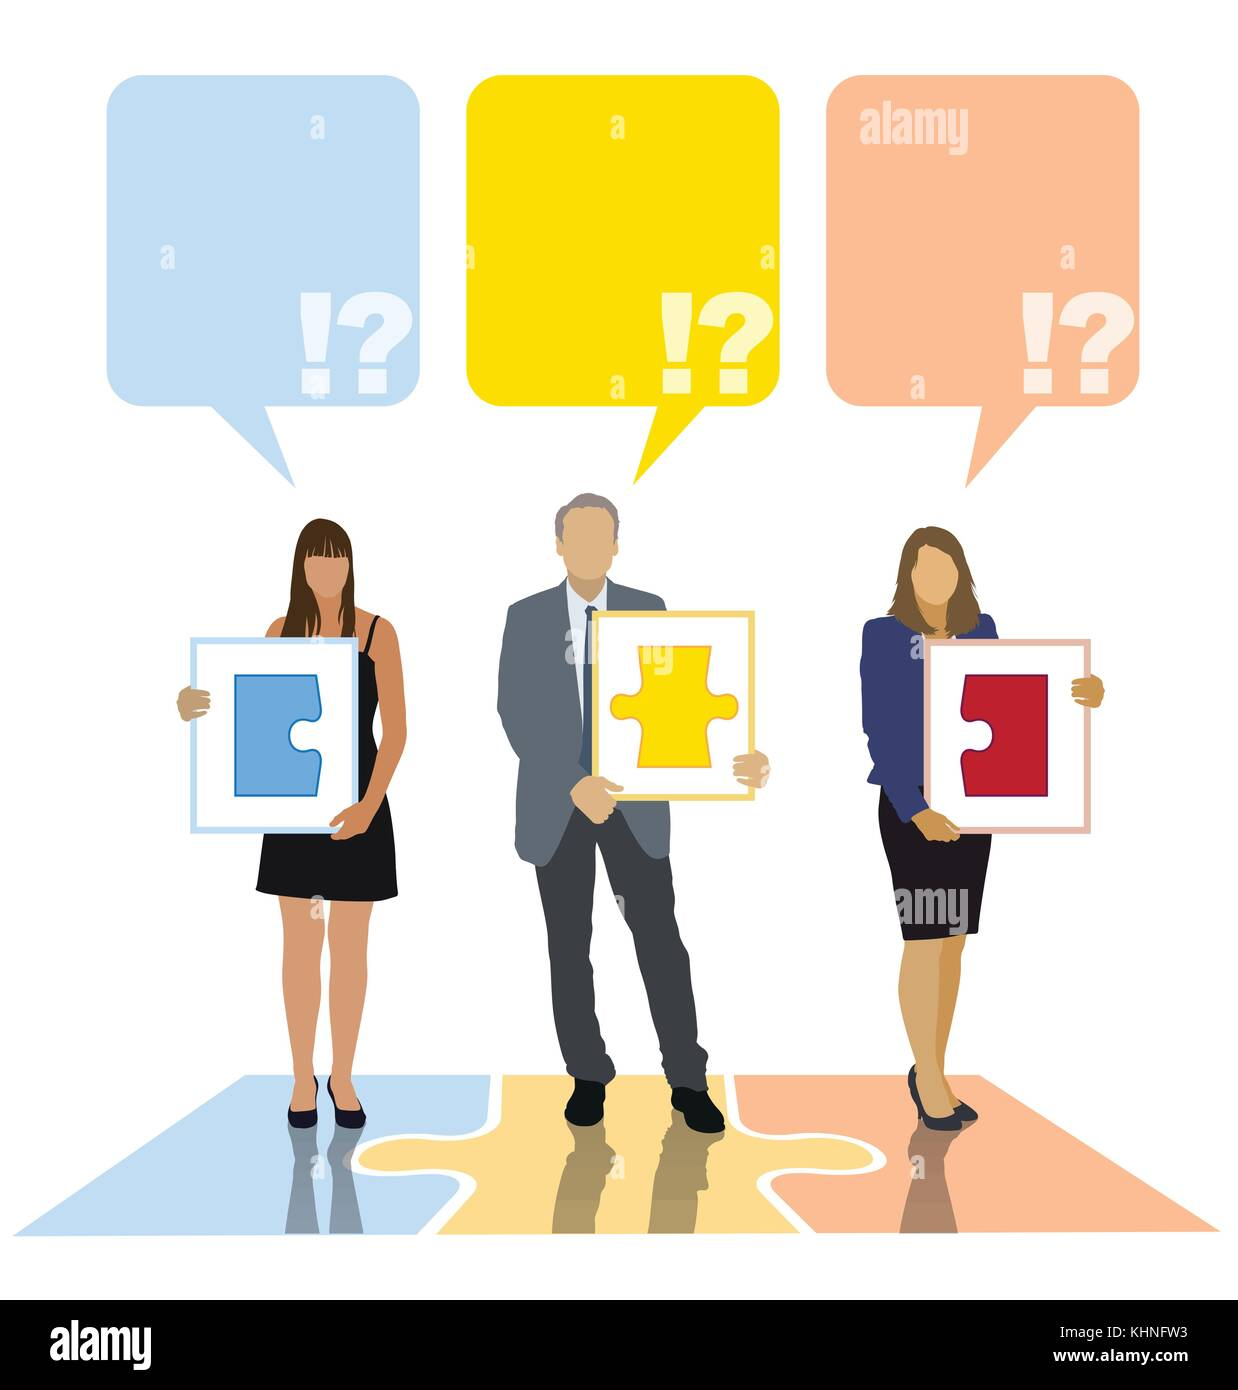 Team members are presenting their own parts of one big project. Creative template. - Stock Vector